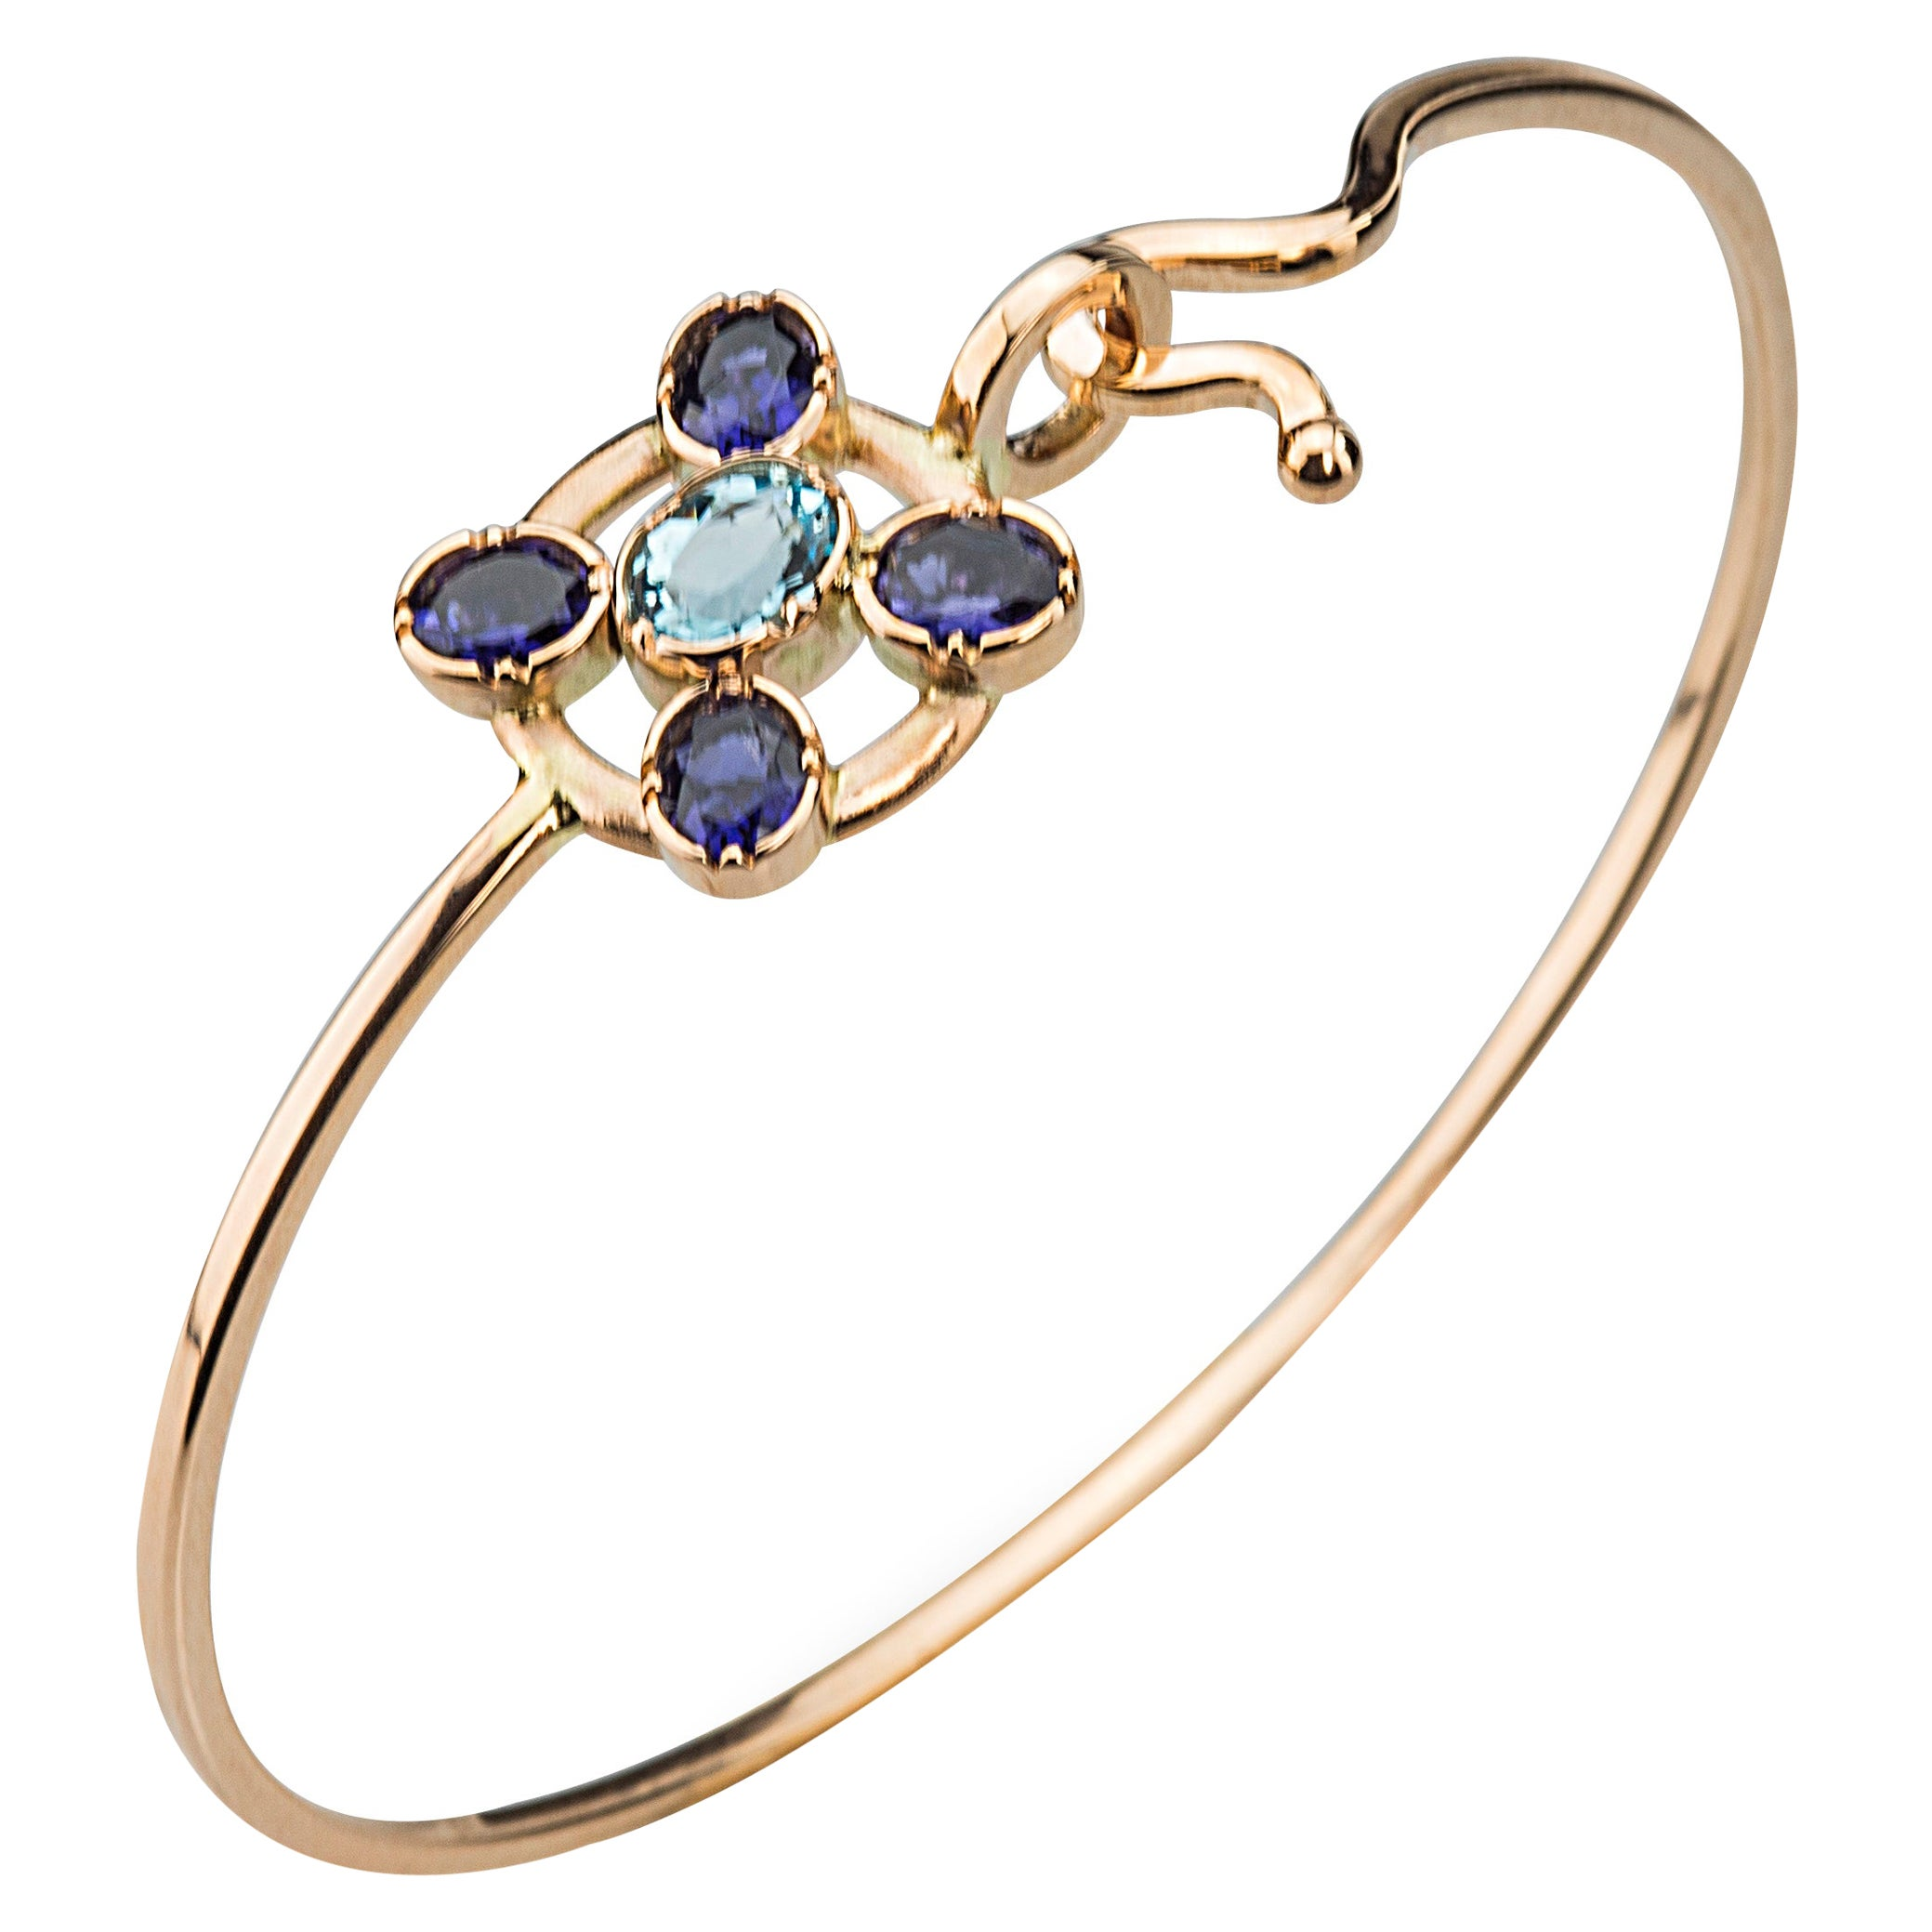 Ugolini 18Karat Yellow Gold Blue Iolite Blue Topaz Twisted Bangle Bracelet